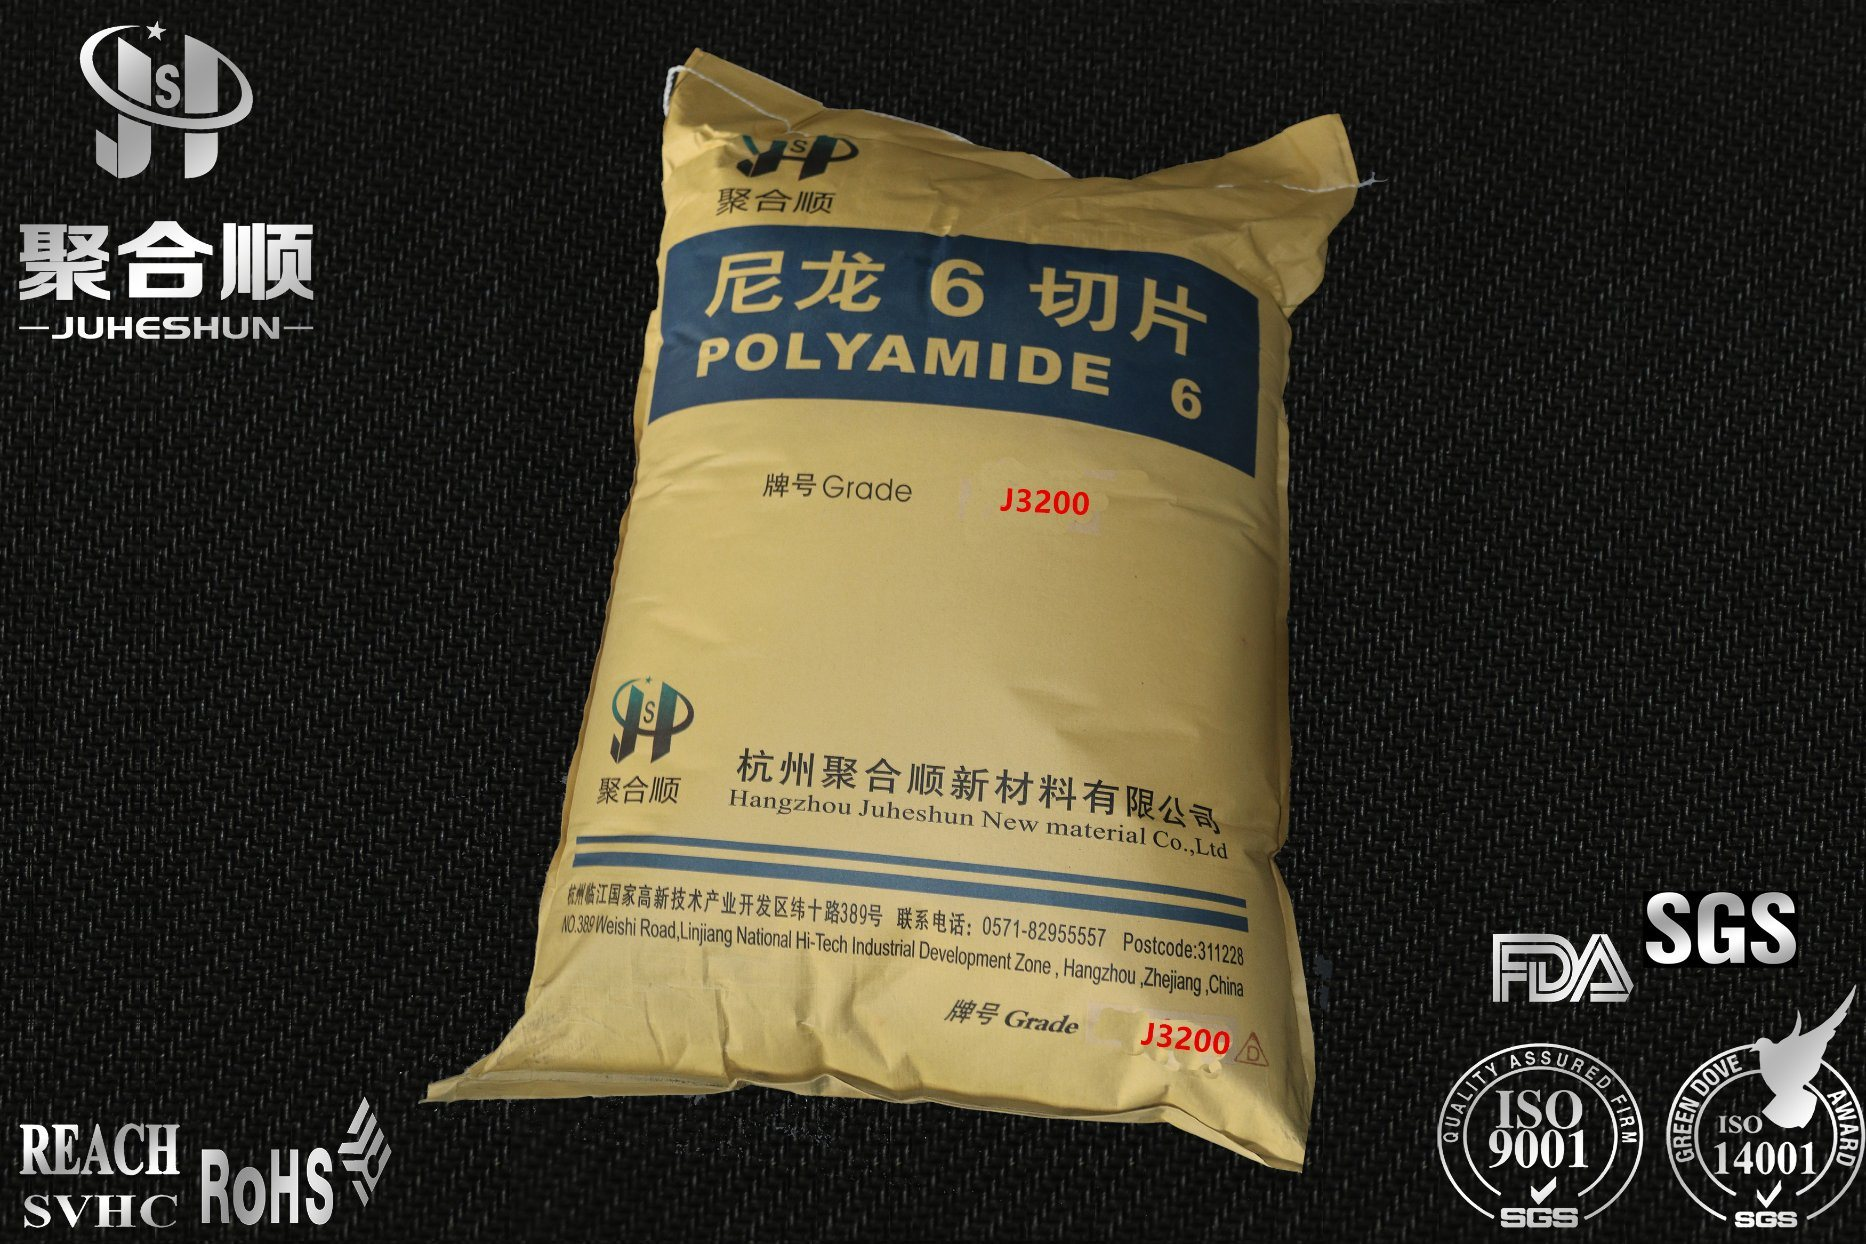 J3200/Nylon 6 Granules/Polyamide 6 Chips/PA6-Industrial Conventional Spinning